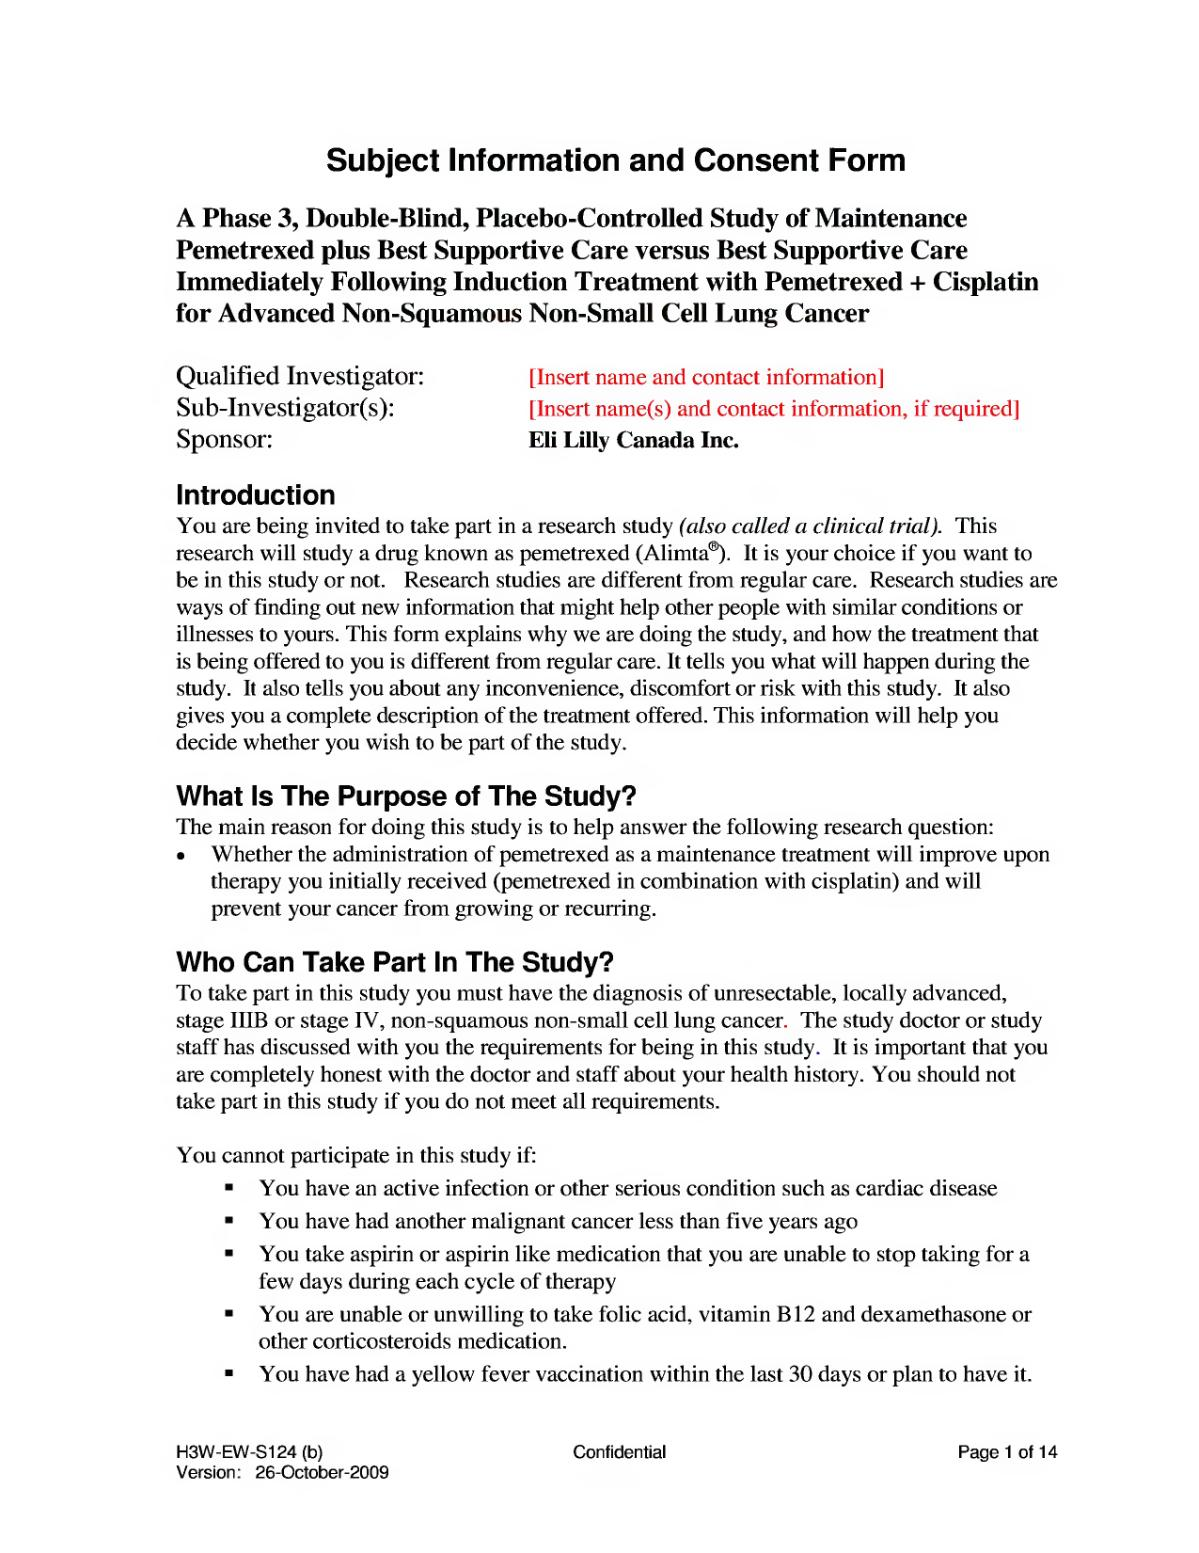 Informed Consent Wikipedia